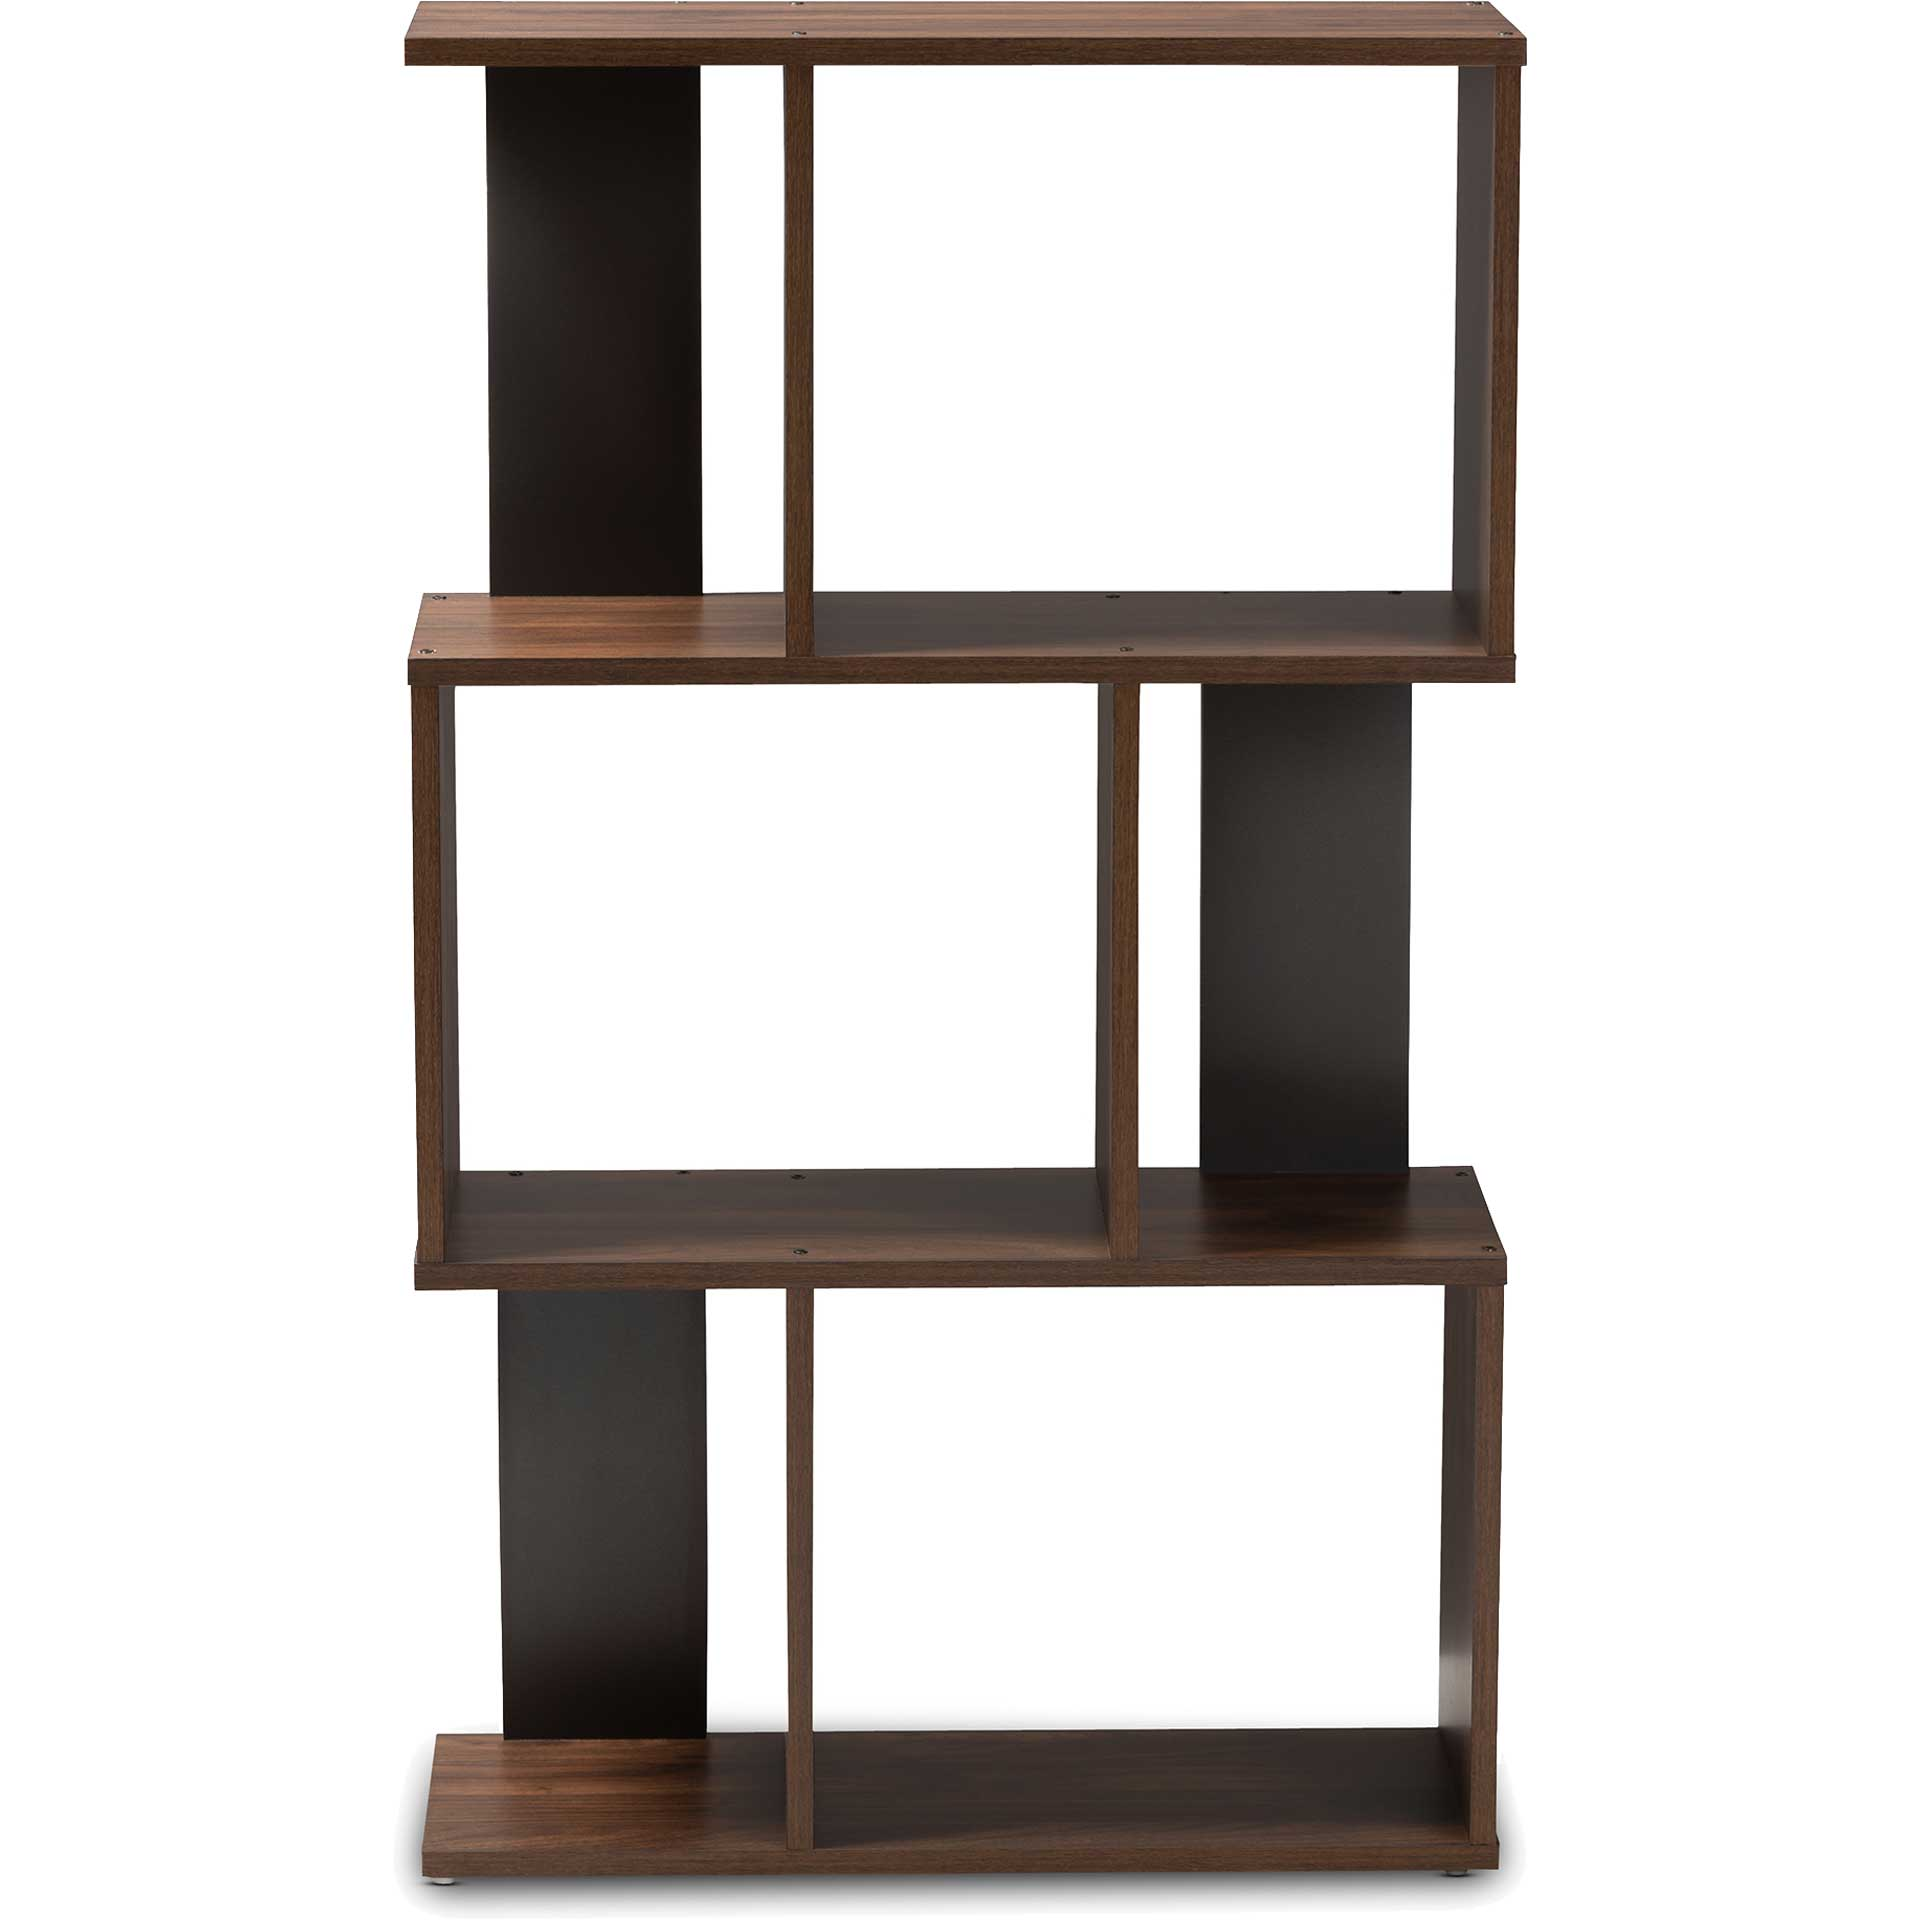 Leala Shelving Unit Walnut/Dark Gray